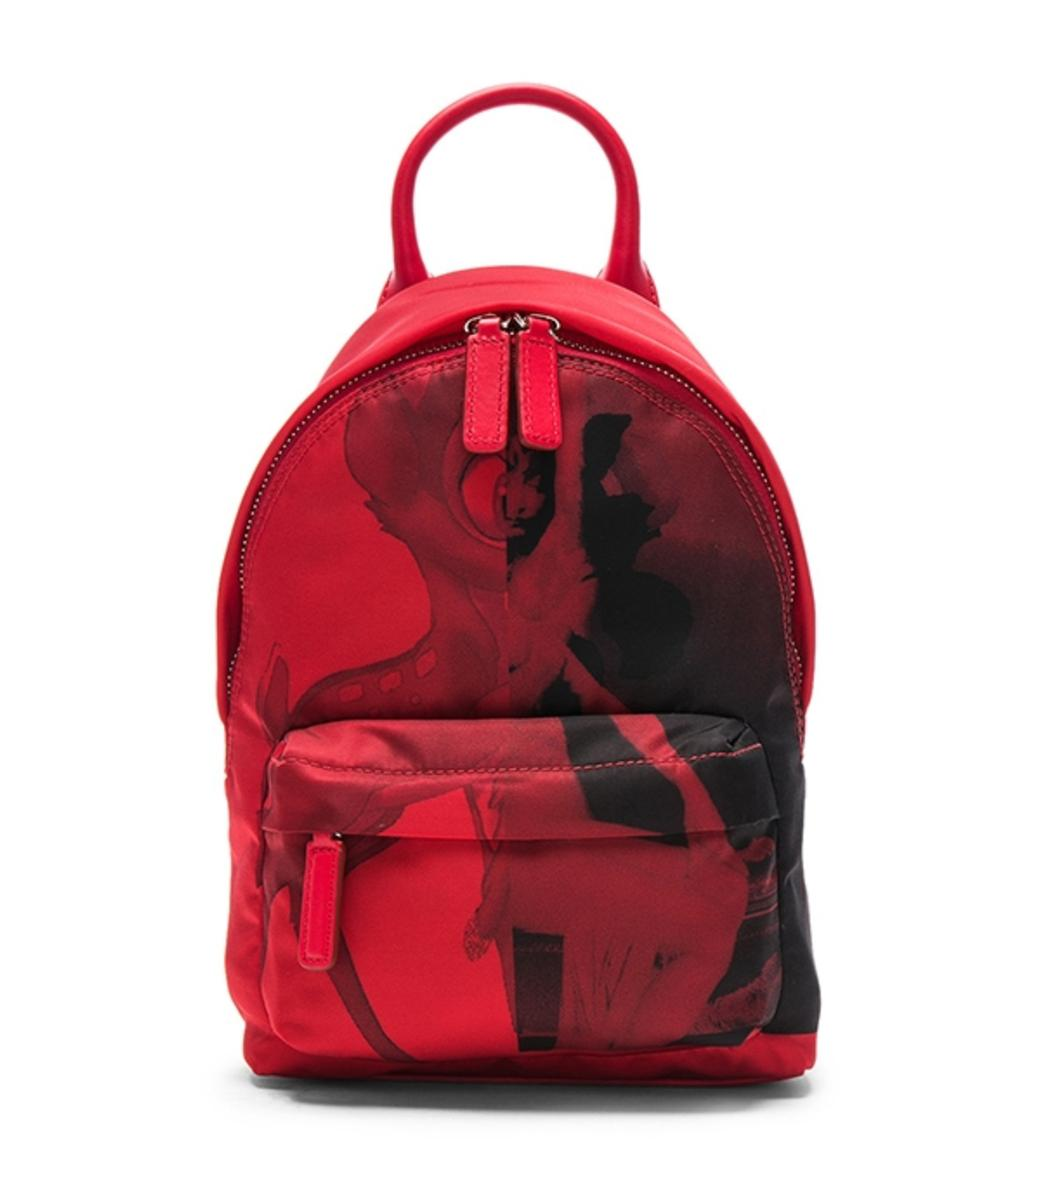 ad4568050c Lyst - Givenchy Red Nano Backpack in Red